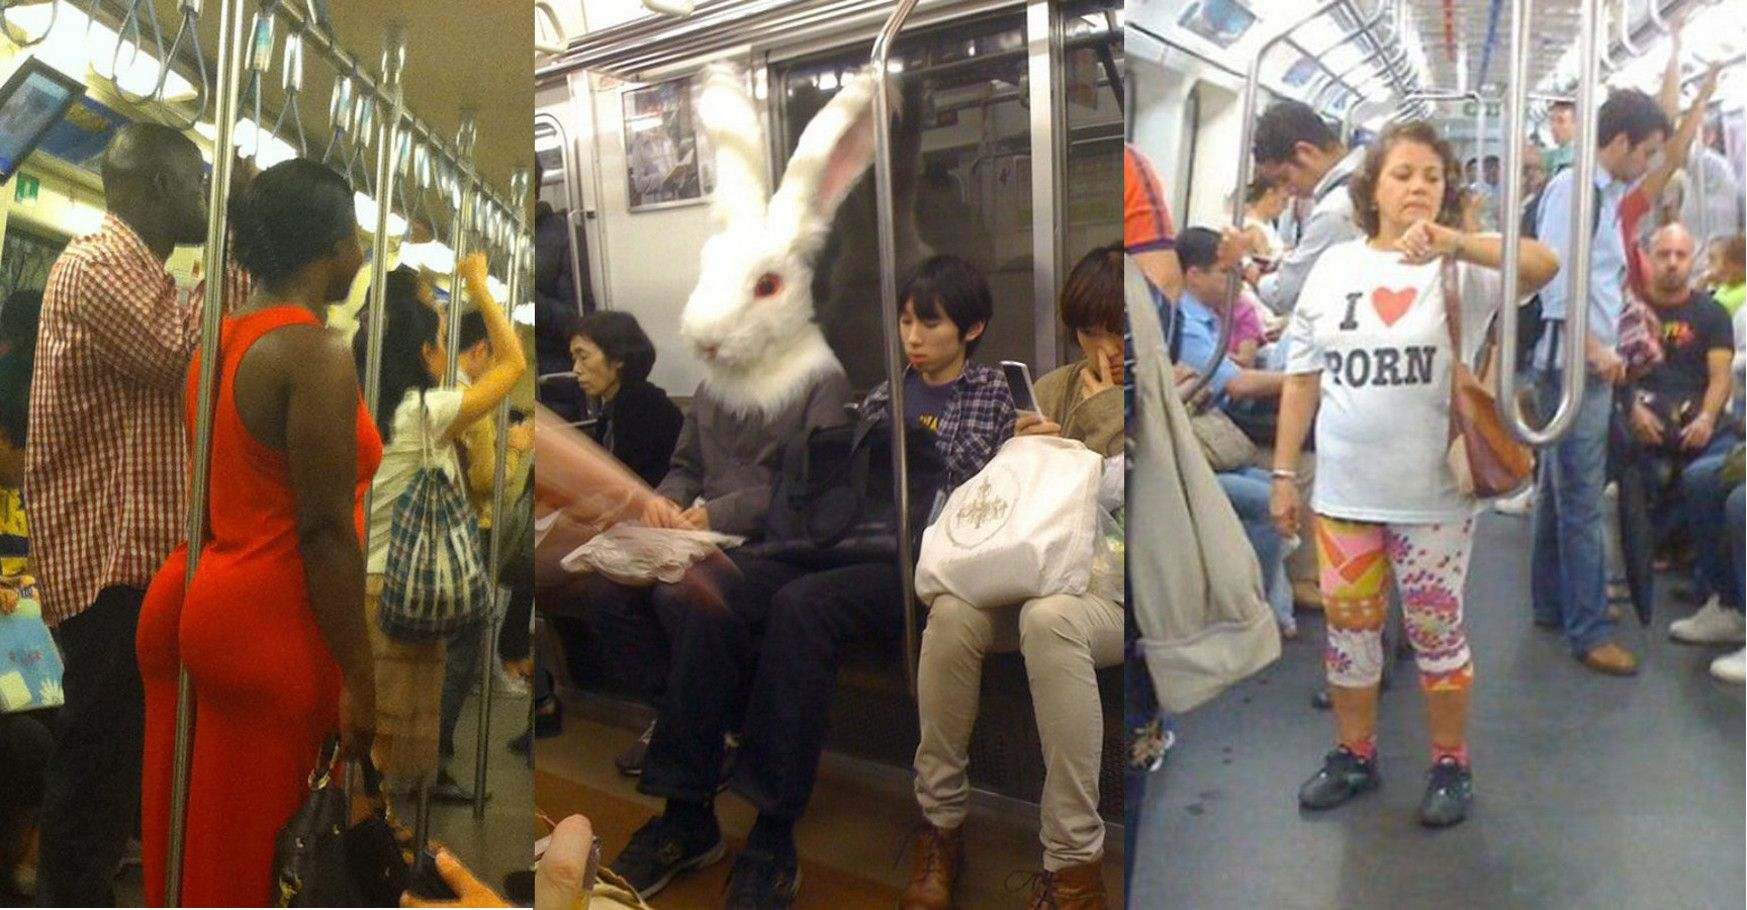 15 Disturbing Photos That Only Make Sense To People Who Take Public Transit